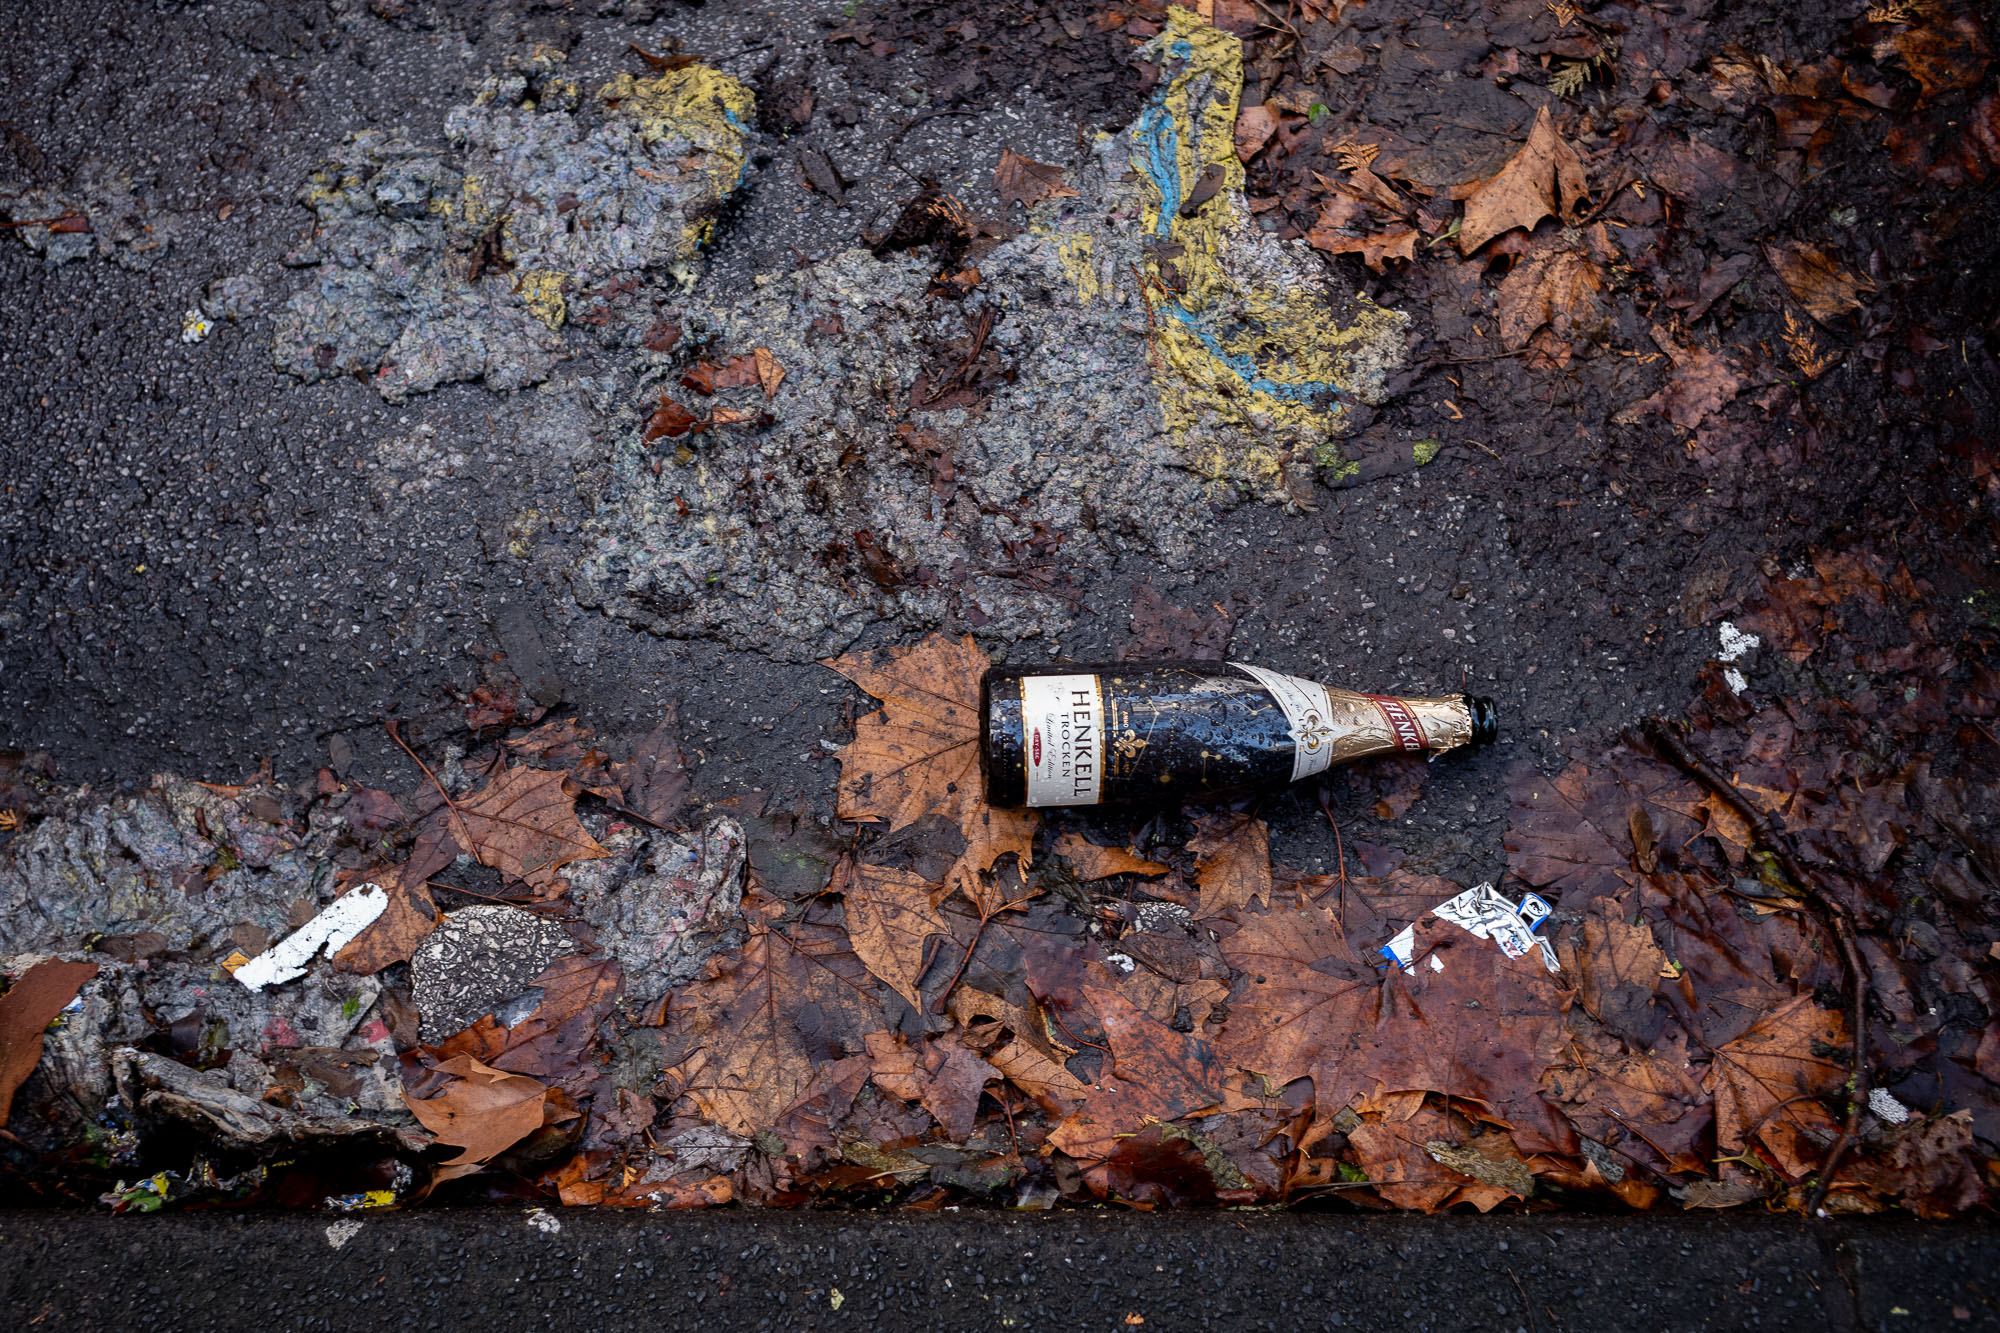 Empty bottle of sparkling wine and trash and wet, brown leafes on the street.